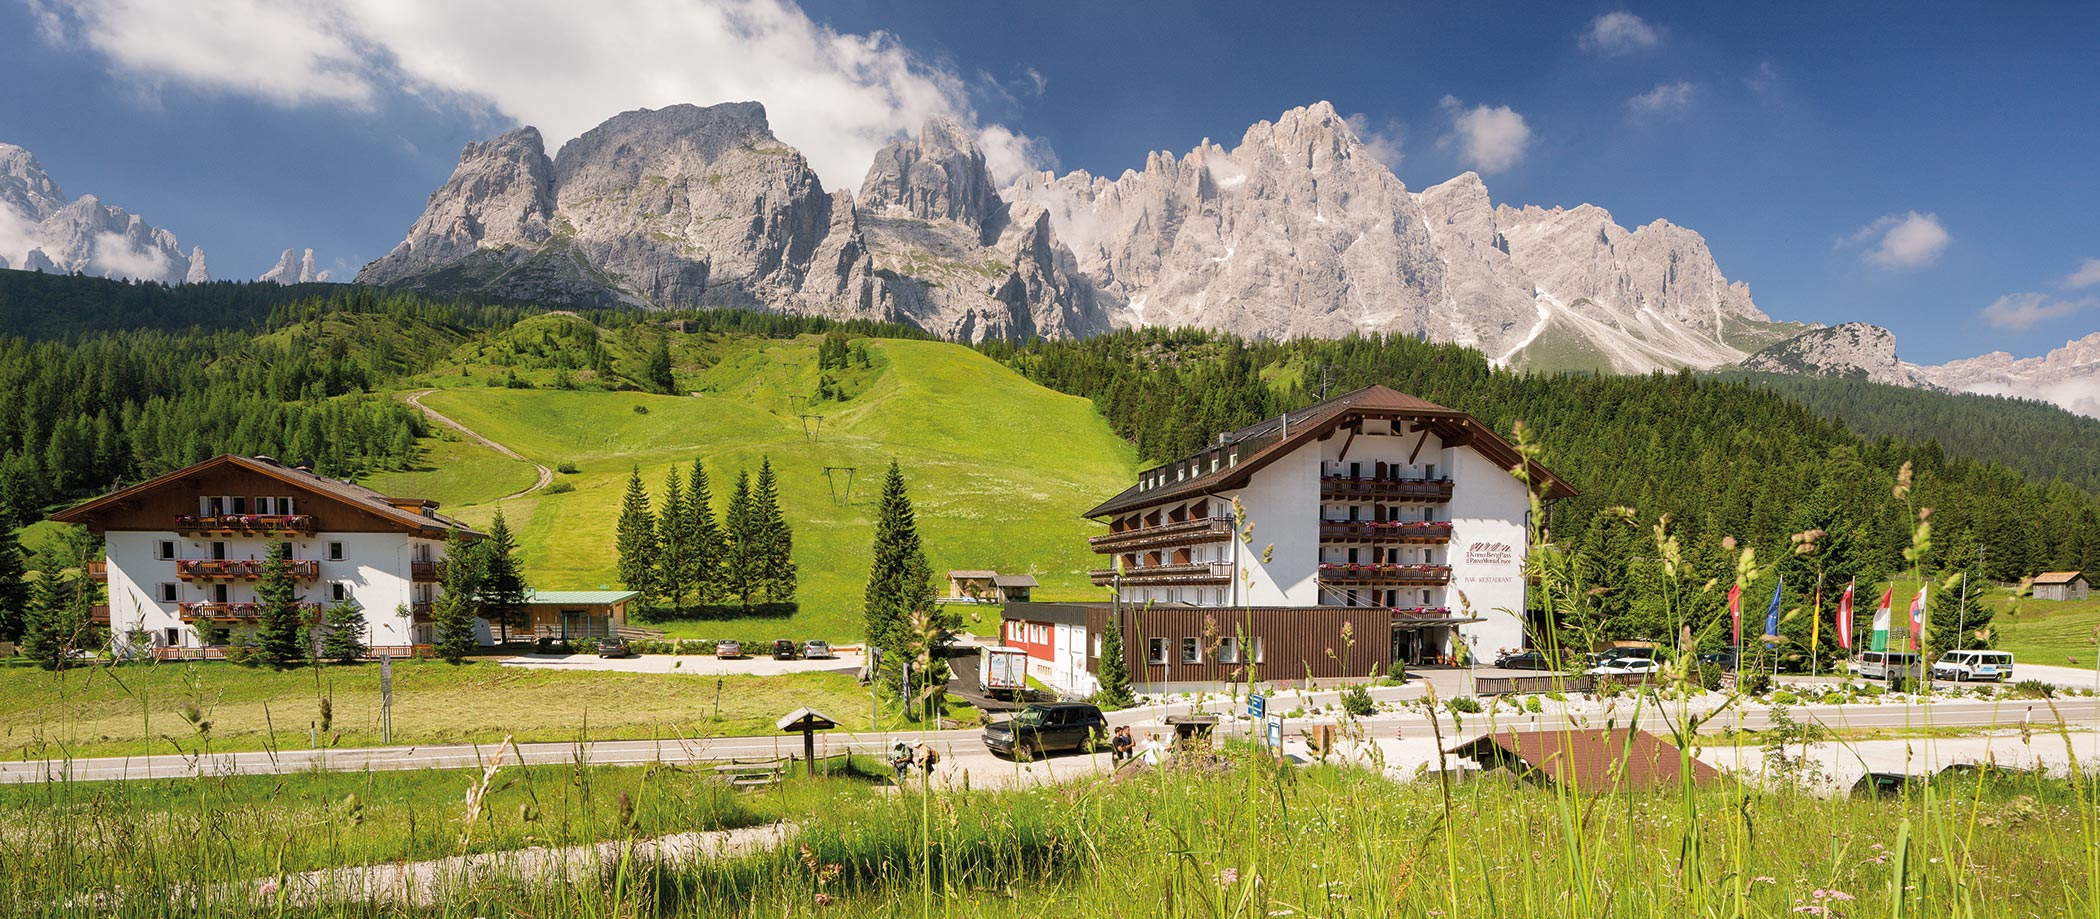 The Kreuzbergpass |  Passo Monte Croce in the Dolomites